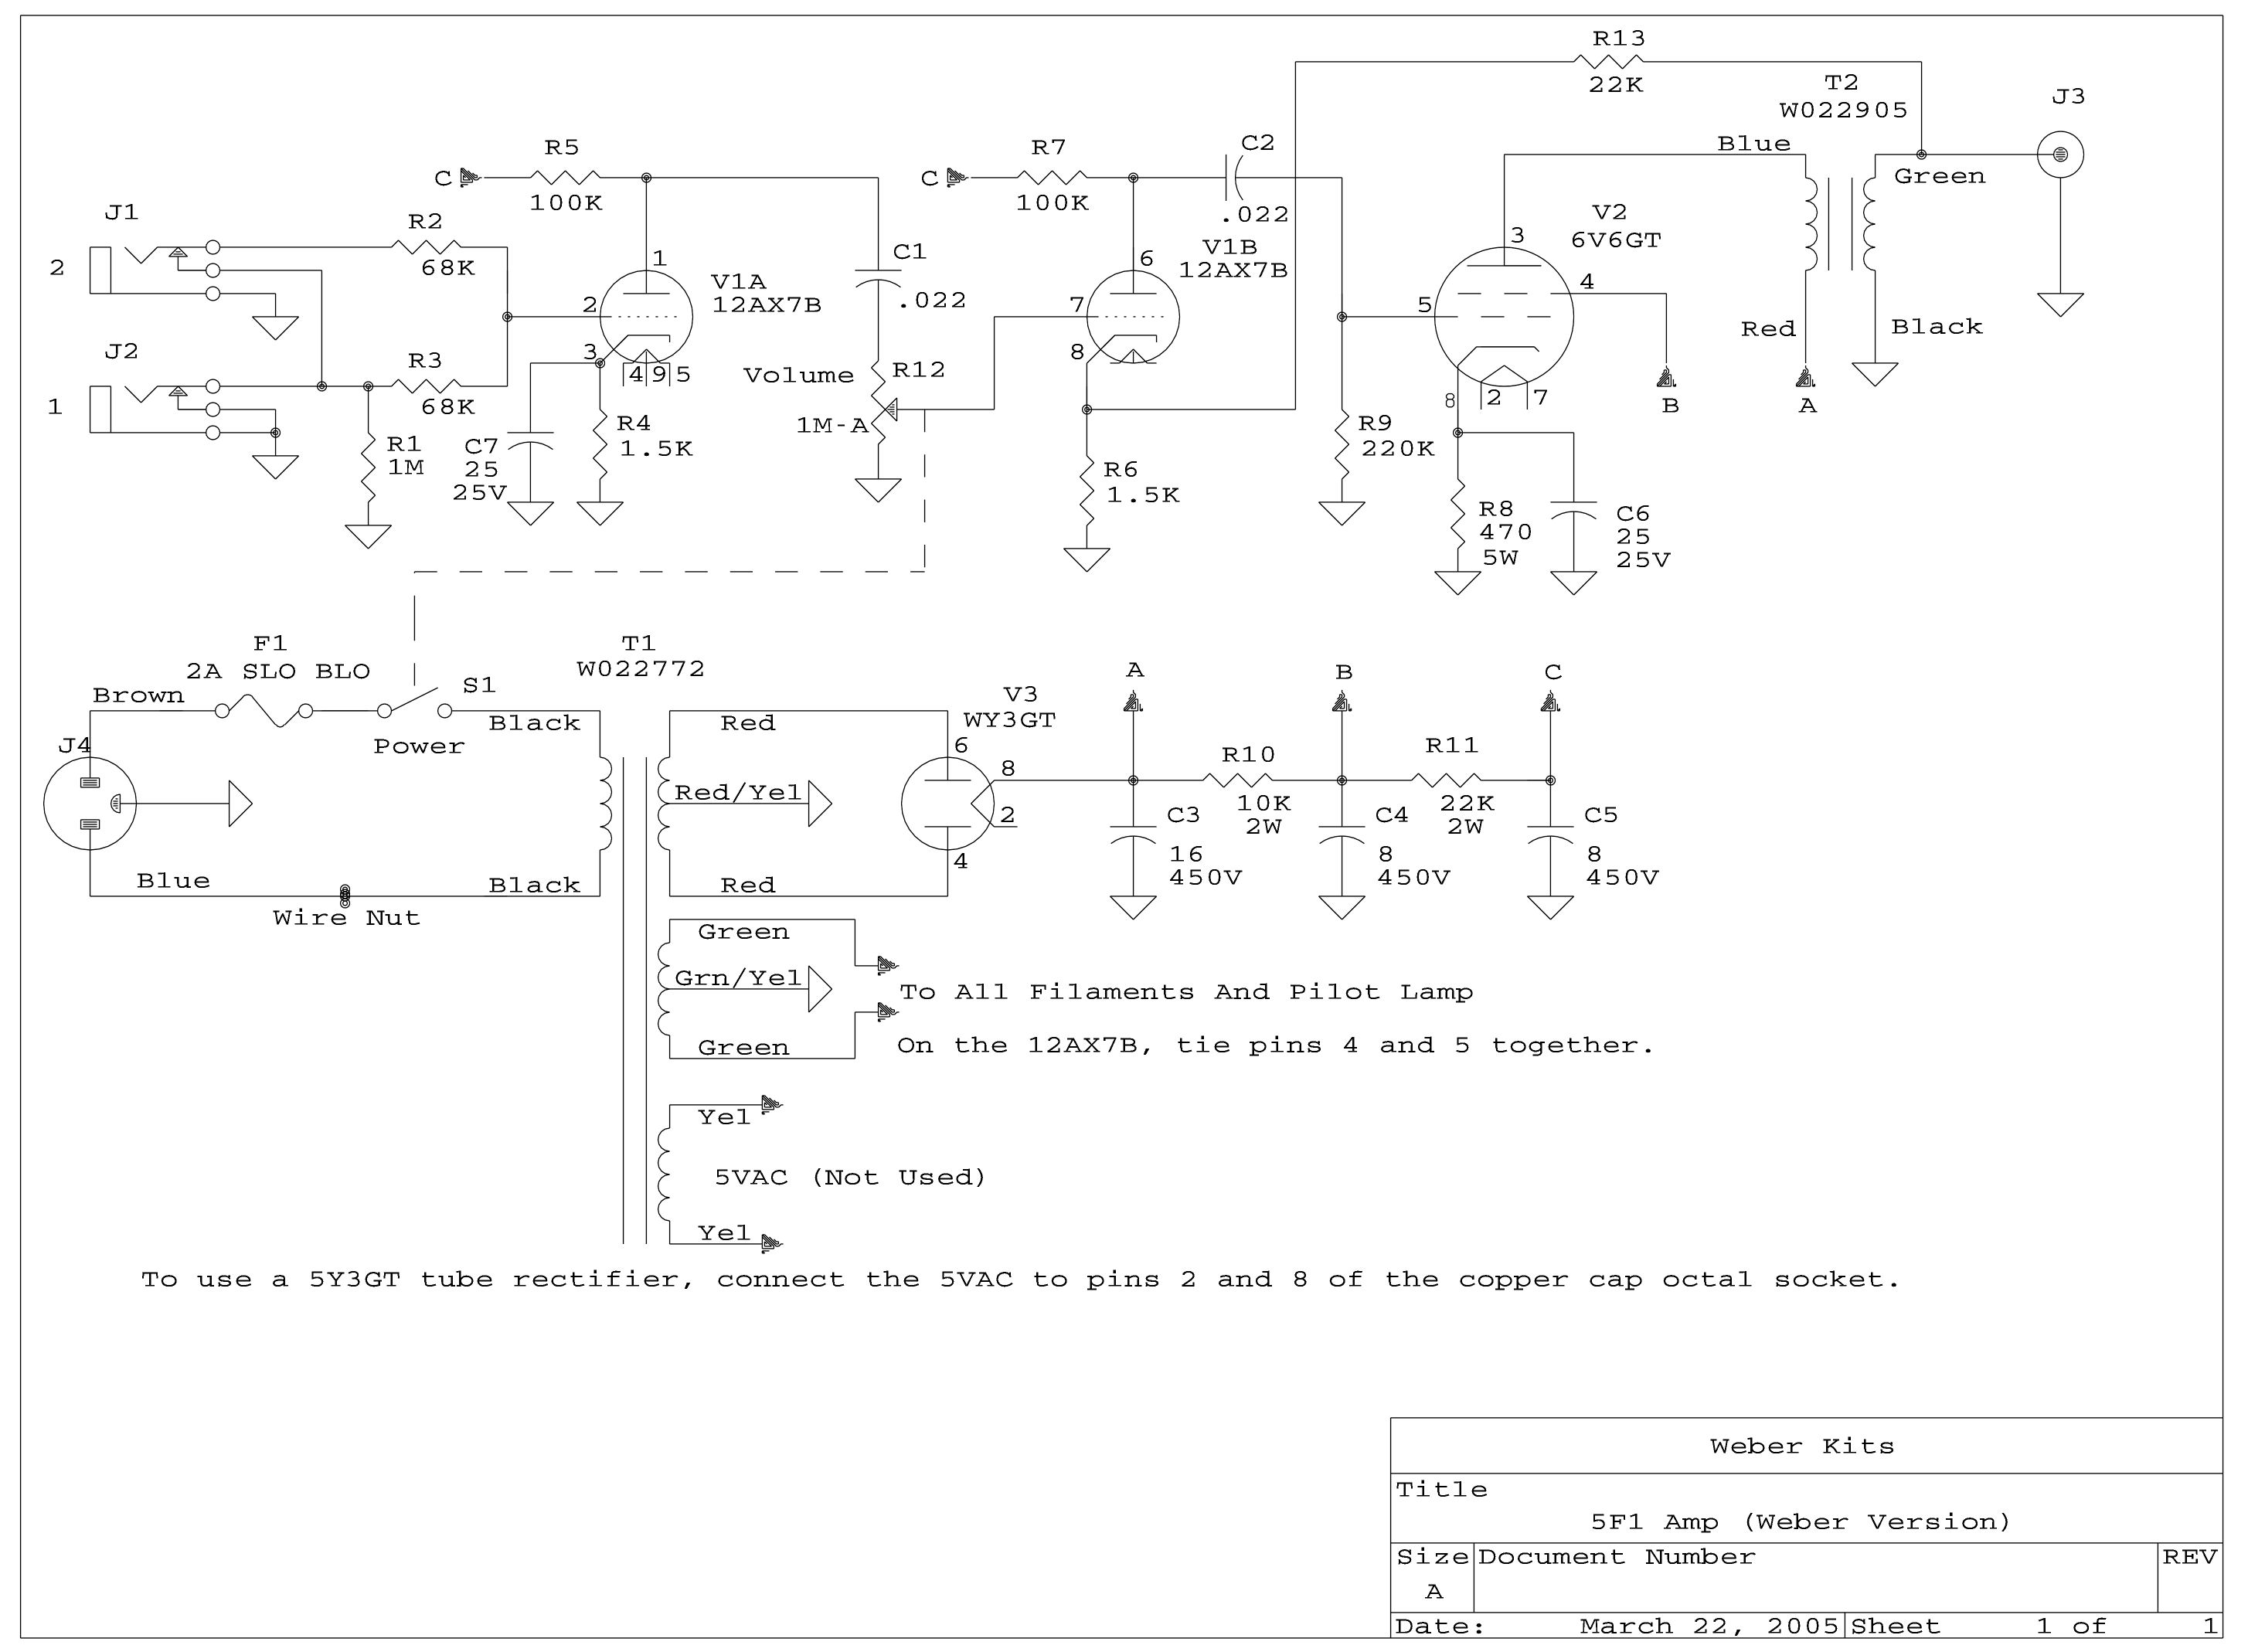 5f1 Amp Kit Weber Wiring Diagrams Schematic